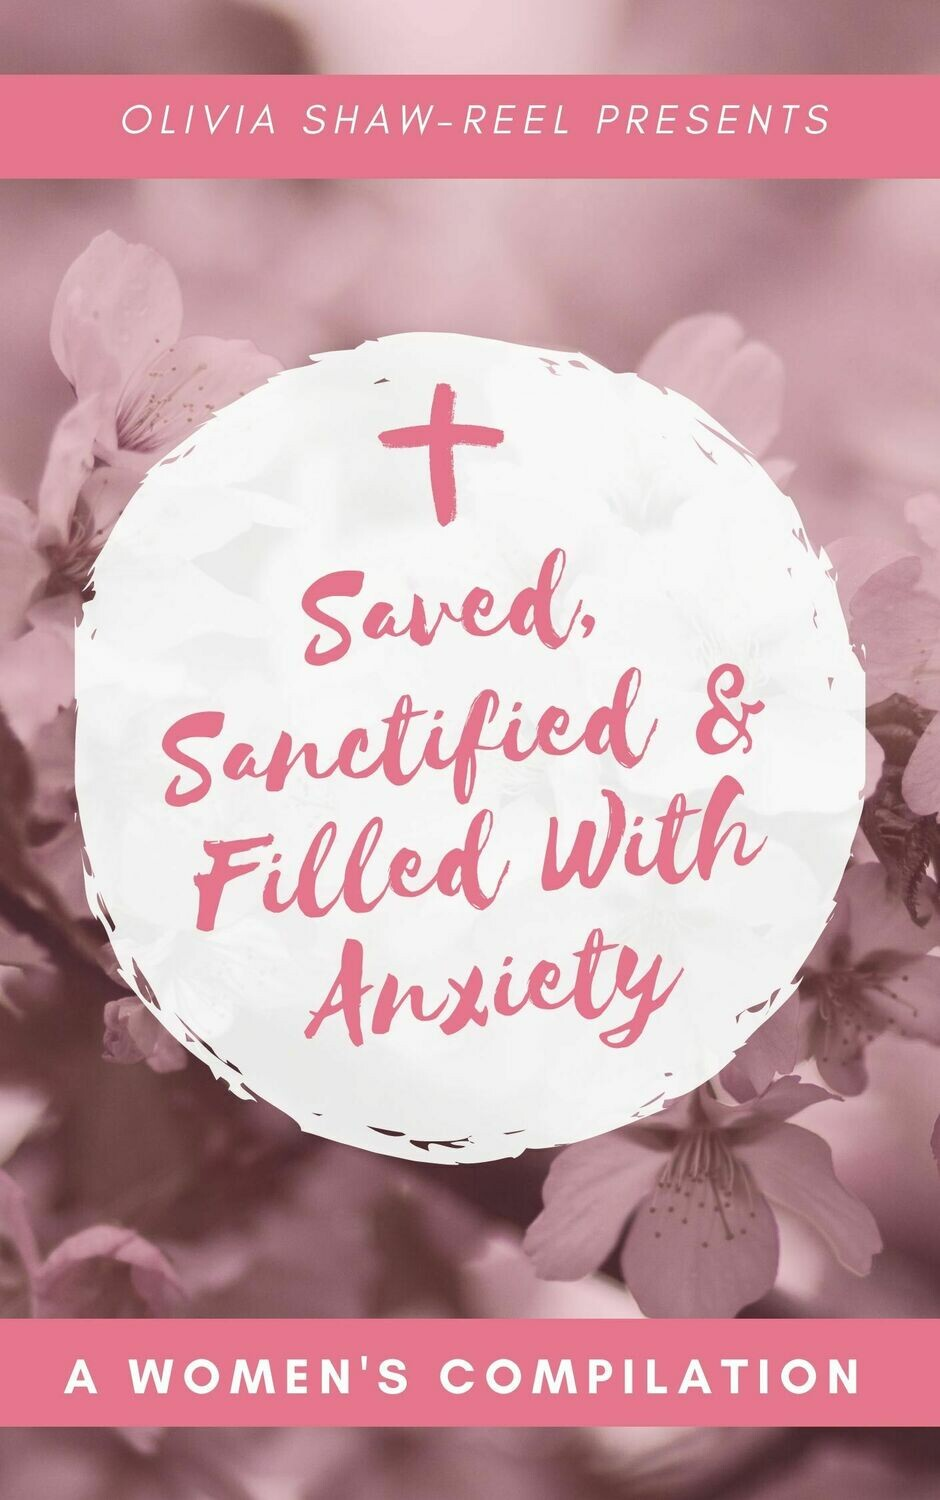 Saved, Sanctified, & Filled With Anxiety Compilation